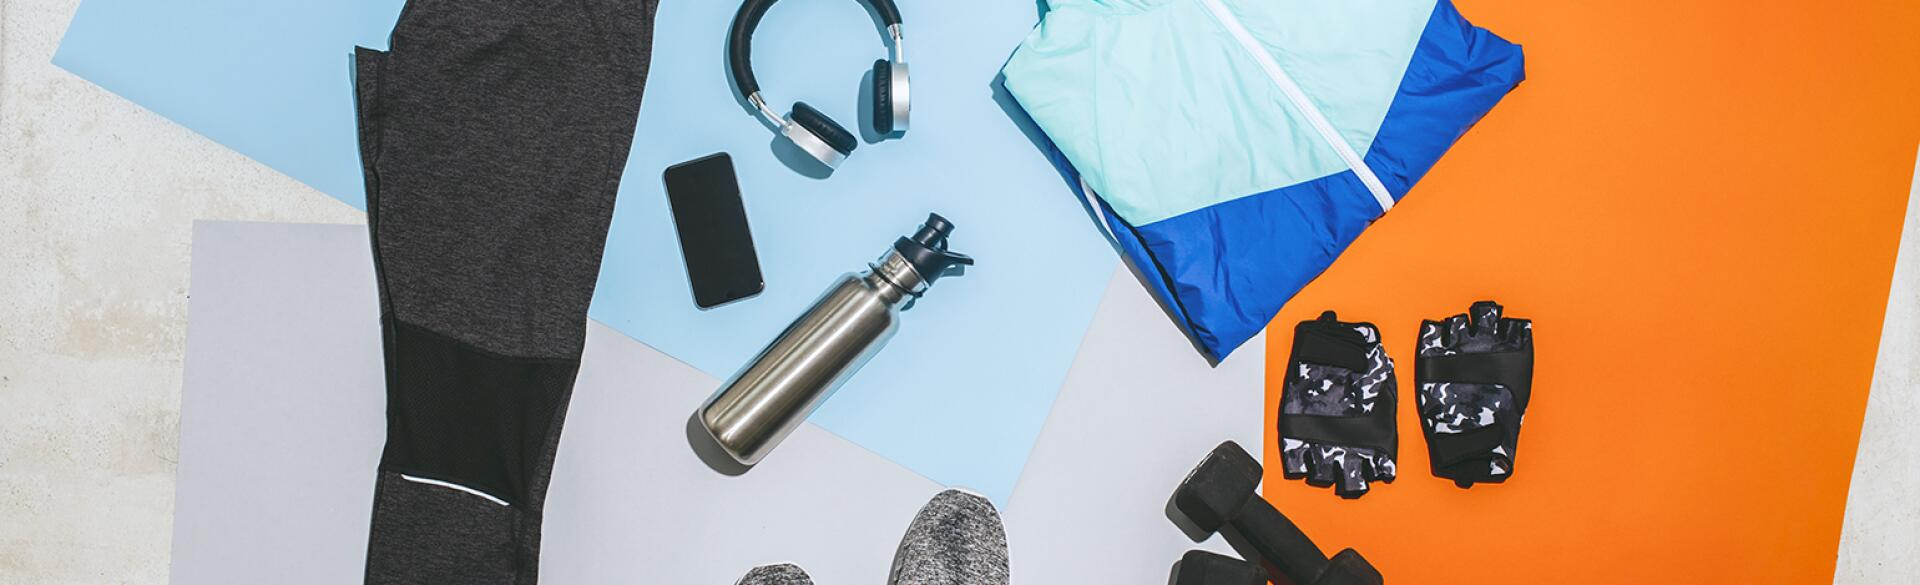 A photo of fitness gear, including sneakers, a workout outfit, a jumprope, and free weights.